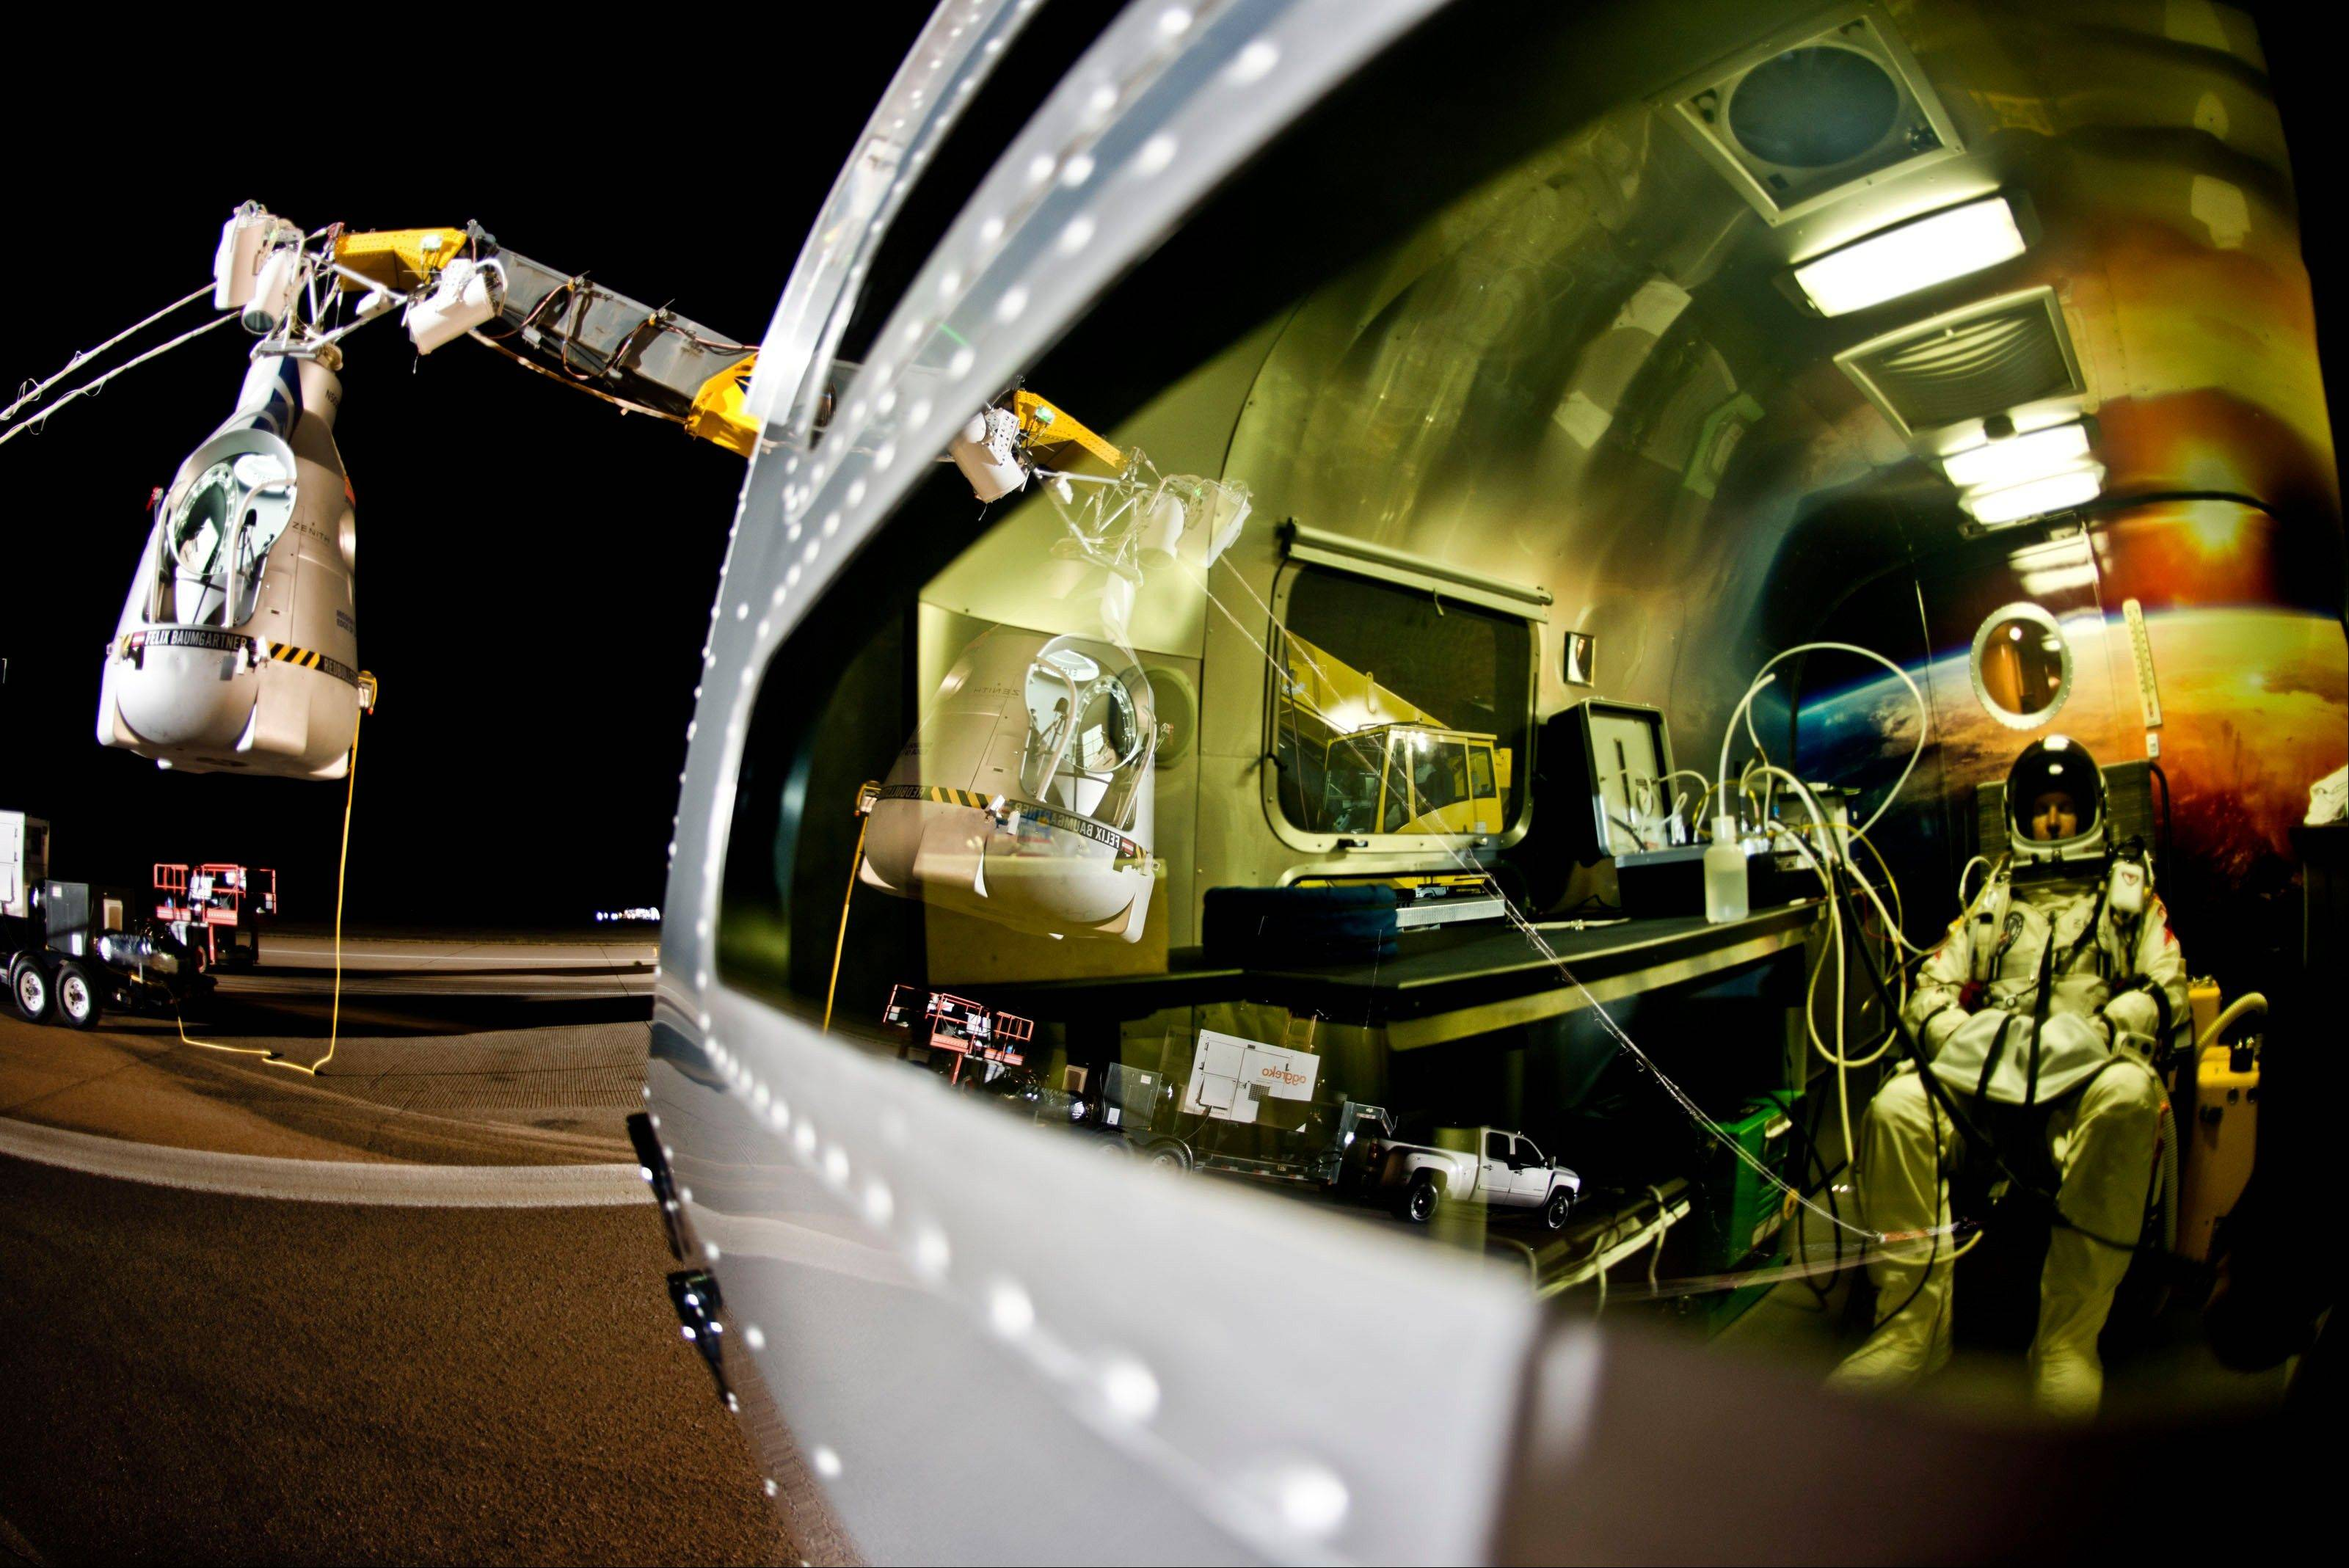 In this photo provided by Red Bull, pilot Felix Baumgartner of Austria sits in his trailer during the final manned flight for Red Bull Stratos in Roswell, N.M. on Sunday, Oct. 14, 2012. Baumgartner plans to jump from an altitude of 120,000 feet, an altitude chosen to enable him to achieve Mach 1 in free fall, which would deliver scientific data to the aerospace community about human survival from high altitudes.